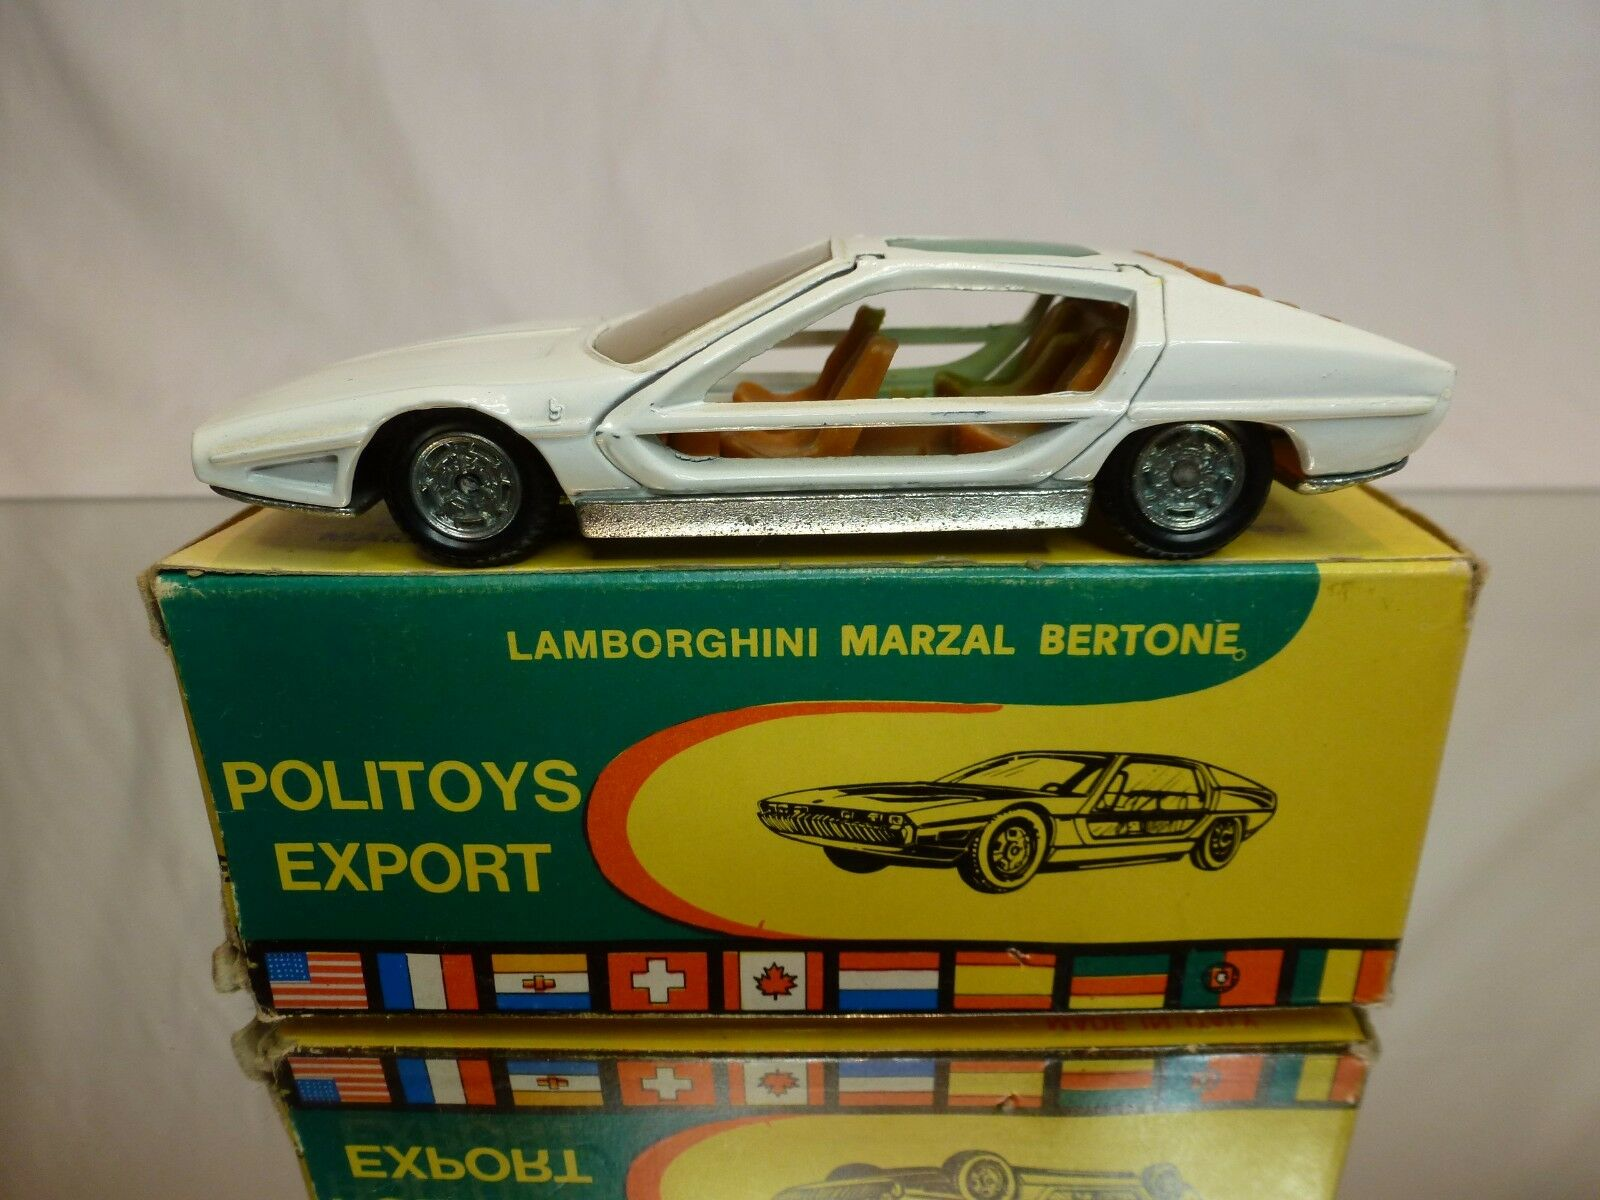 POLITOYS 568 LAMBORGHINI MARZAL BERTONE - OFF blanc 1 43 VERY RARE - GOOD IN BOX